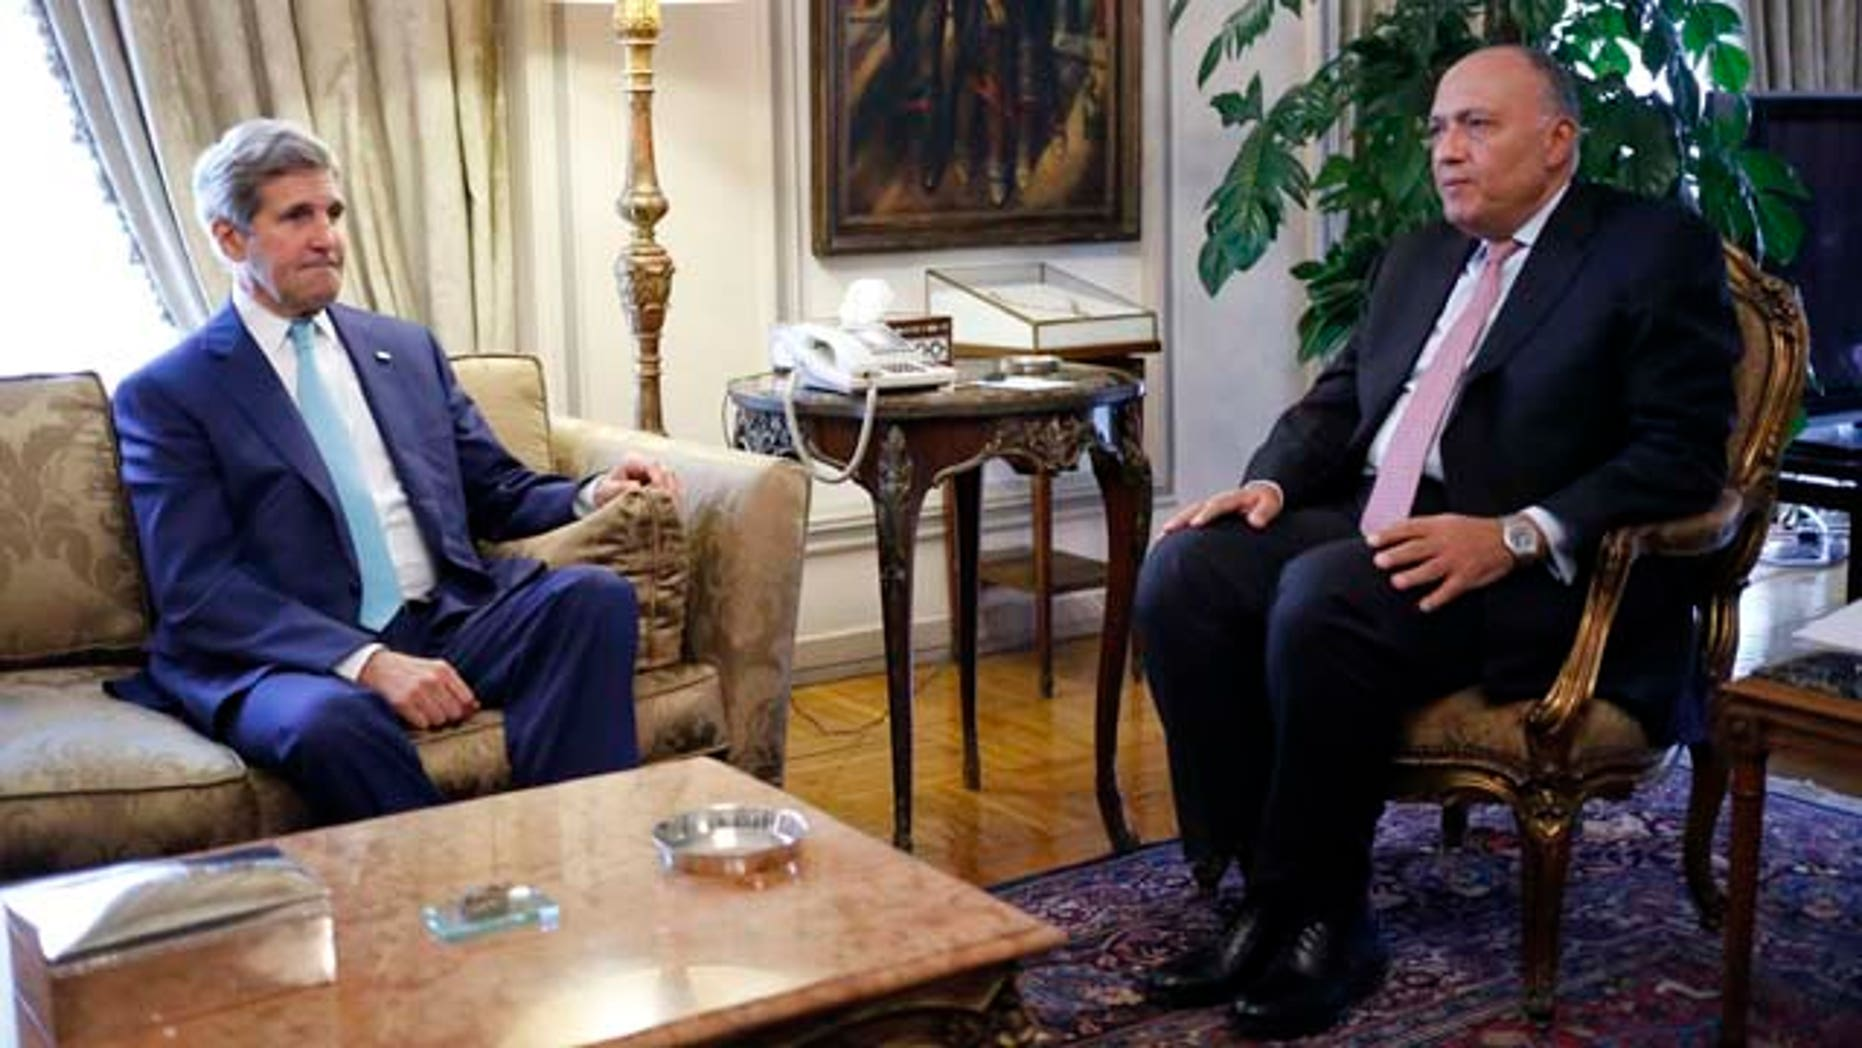 July 22, 2014: U.S. Secretary of State John Kerry meets with Egypt's Foreign Minister Sameh Shukri in Cairo.